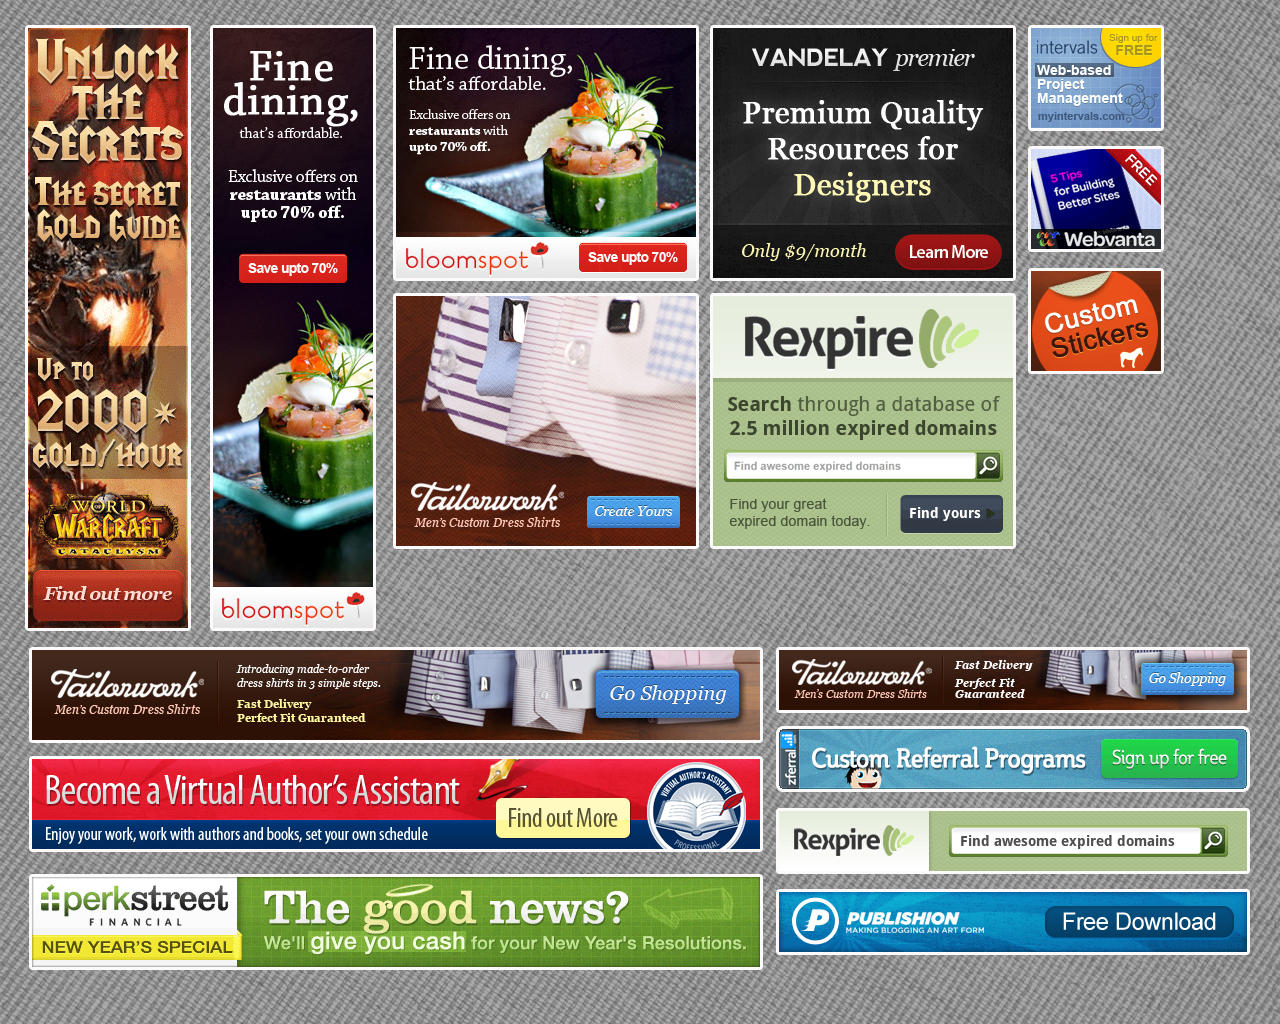 HTML5 Google Adwords Pack Banner Set by Kimp_io - 98507